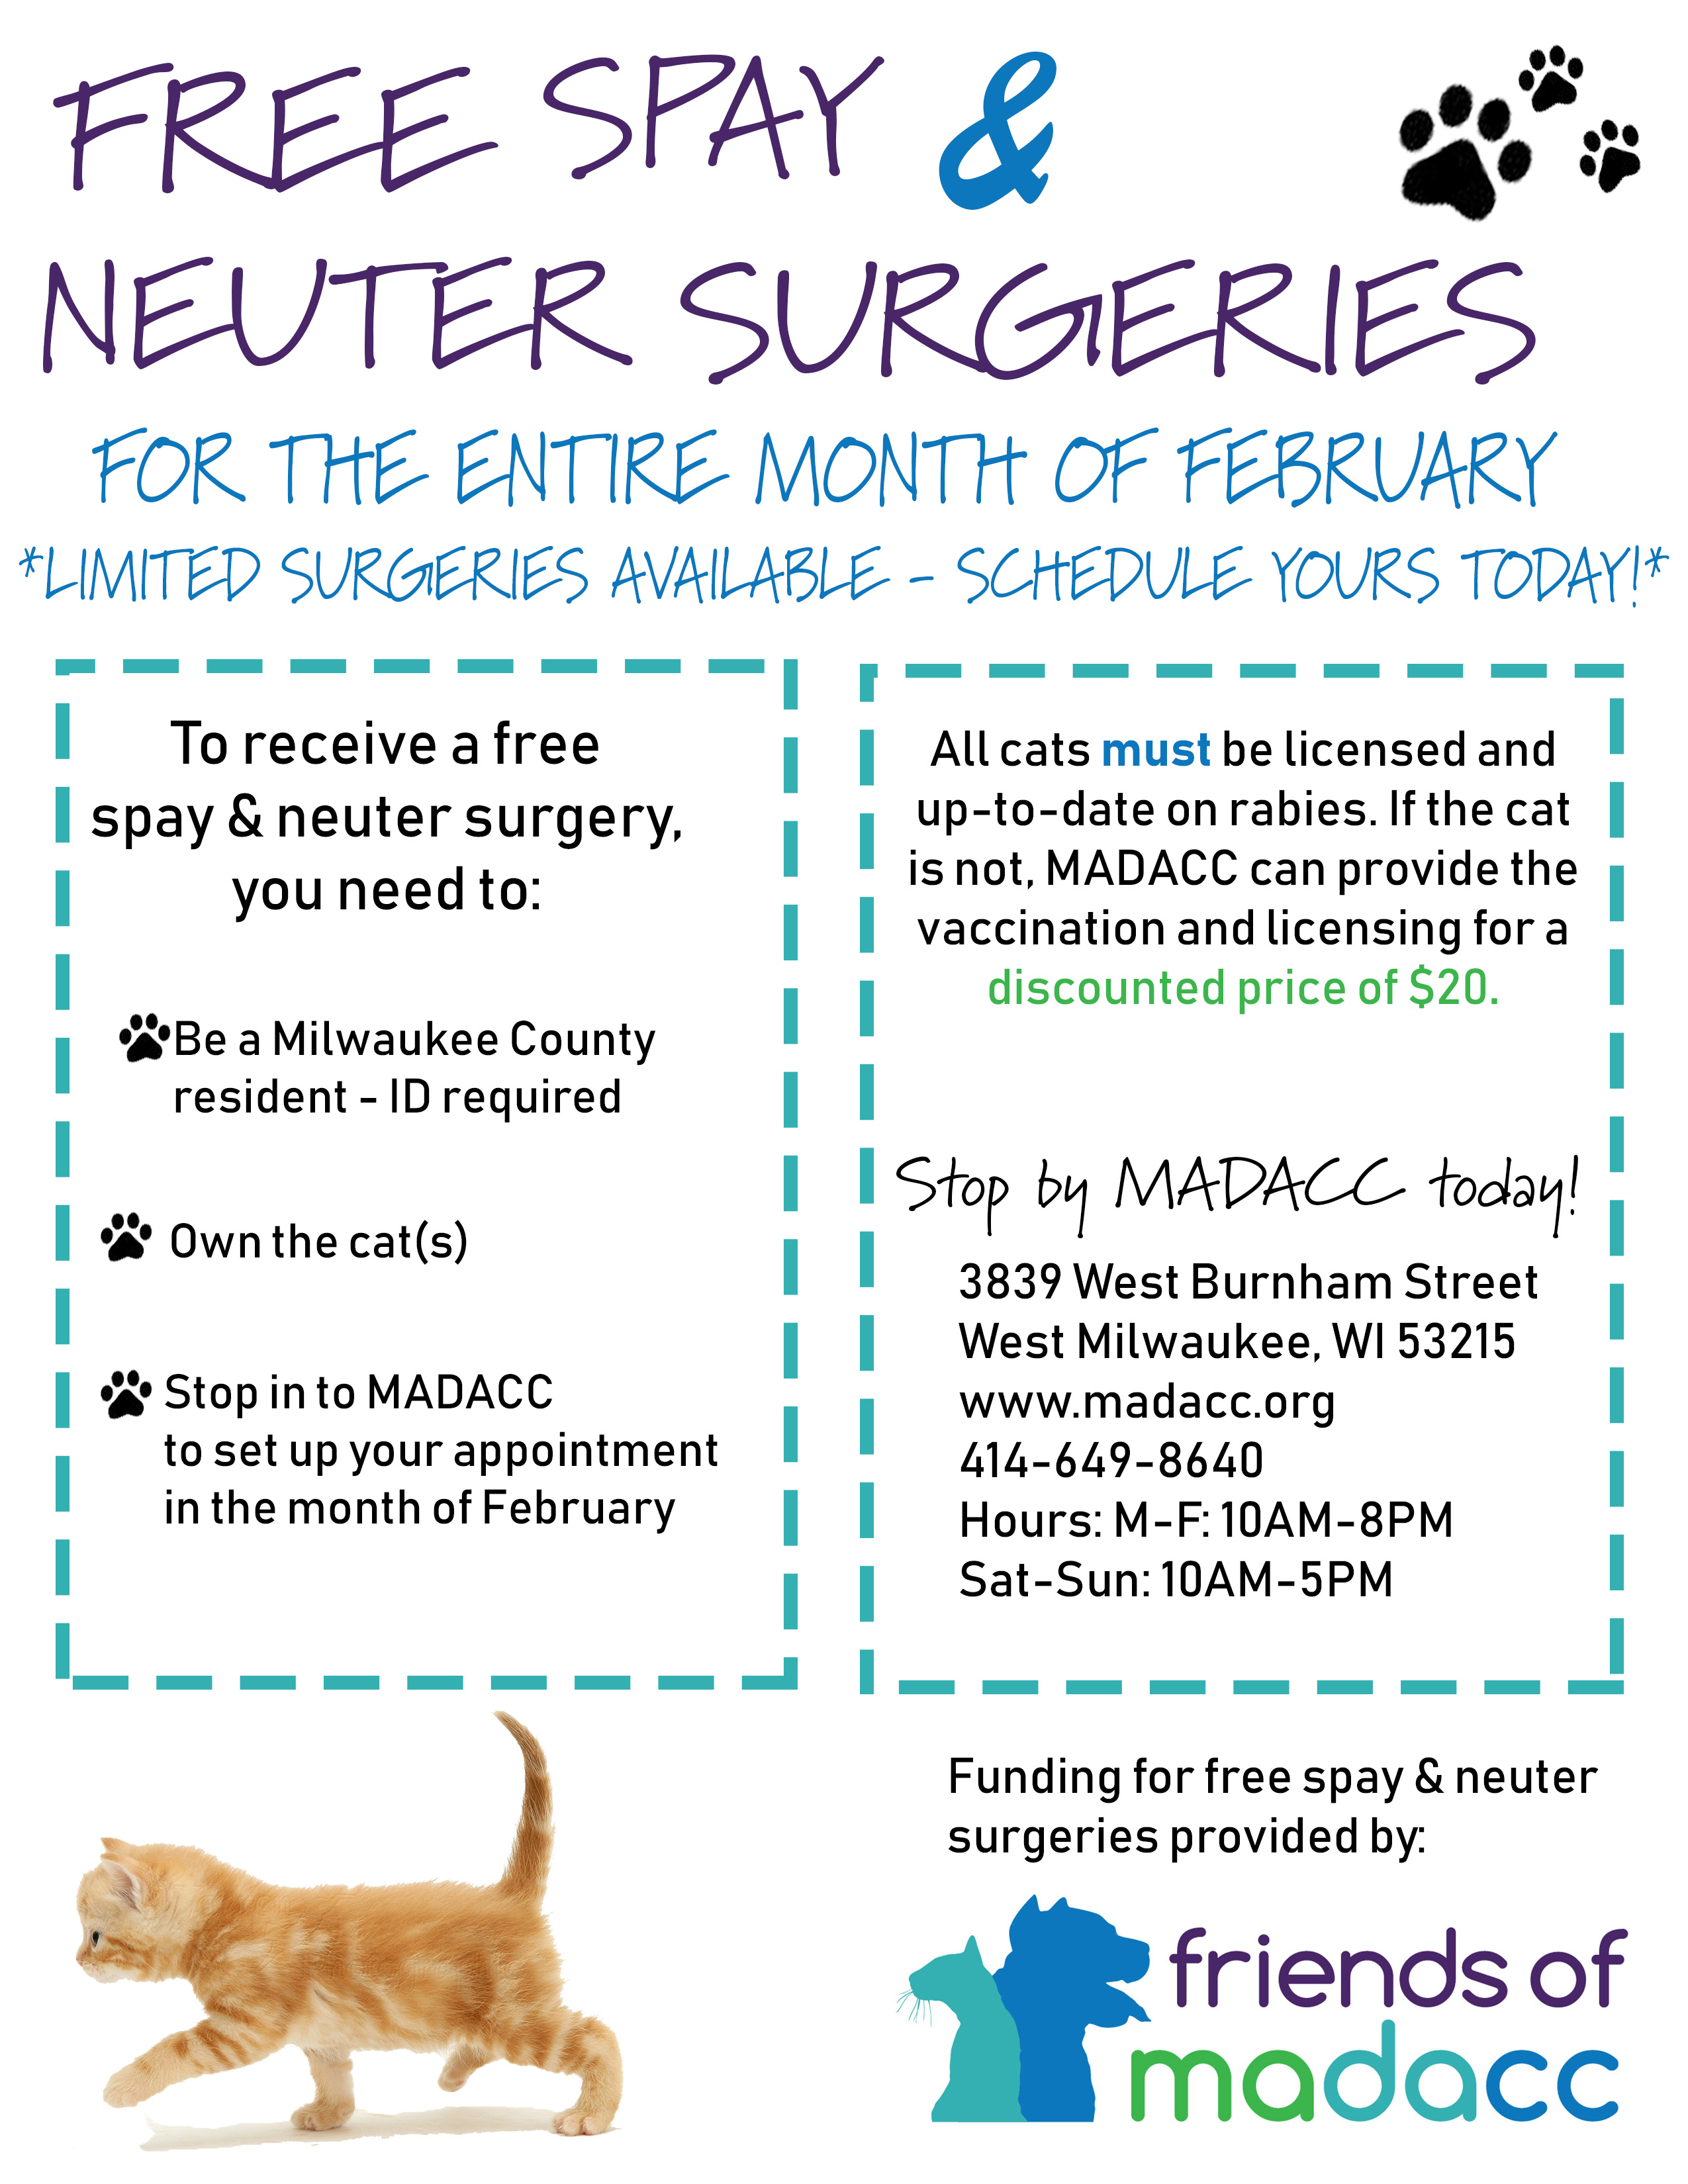 FREE Spay & Neuter Surgeries for Cats the Month of February - SPOTS FILLED  - Friends of MADACC